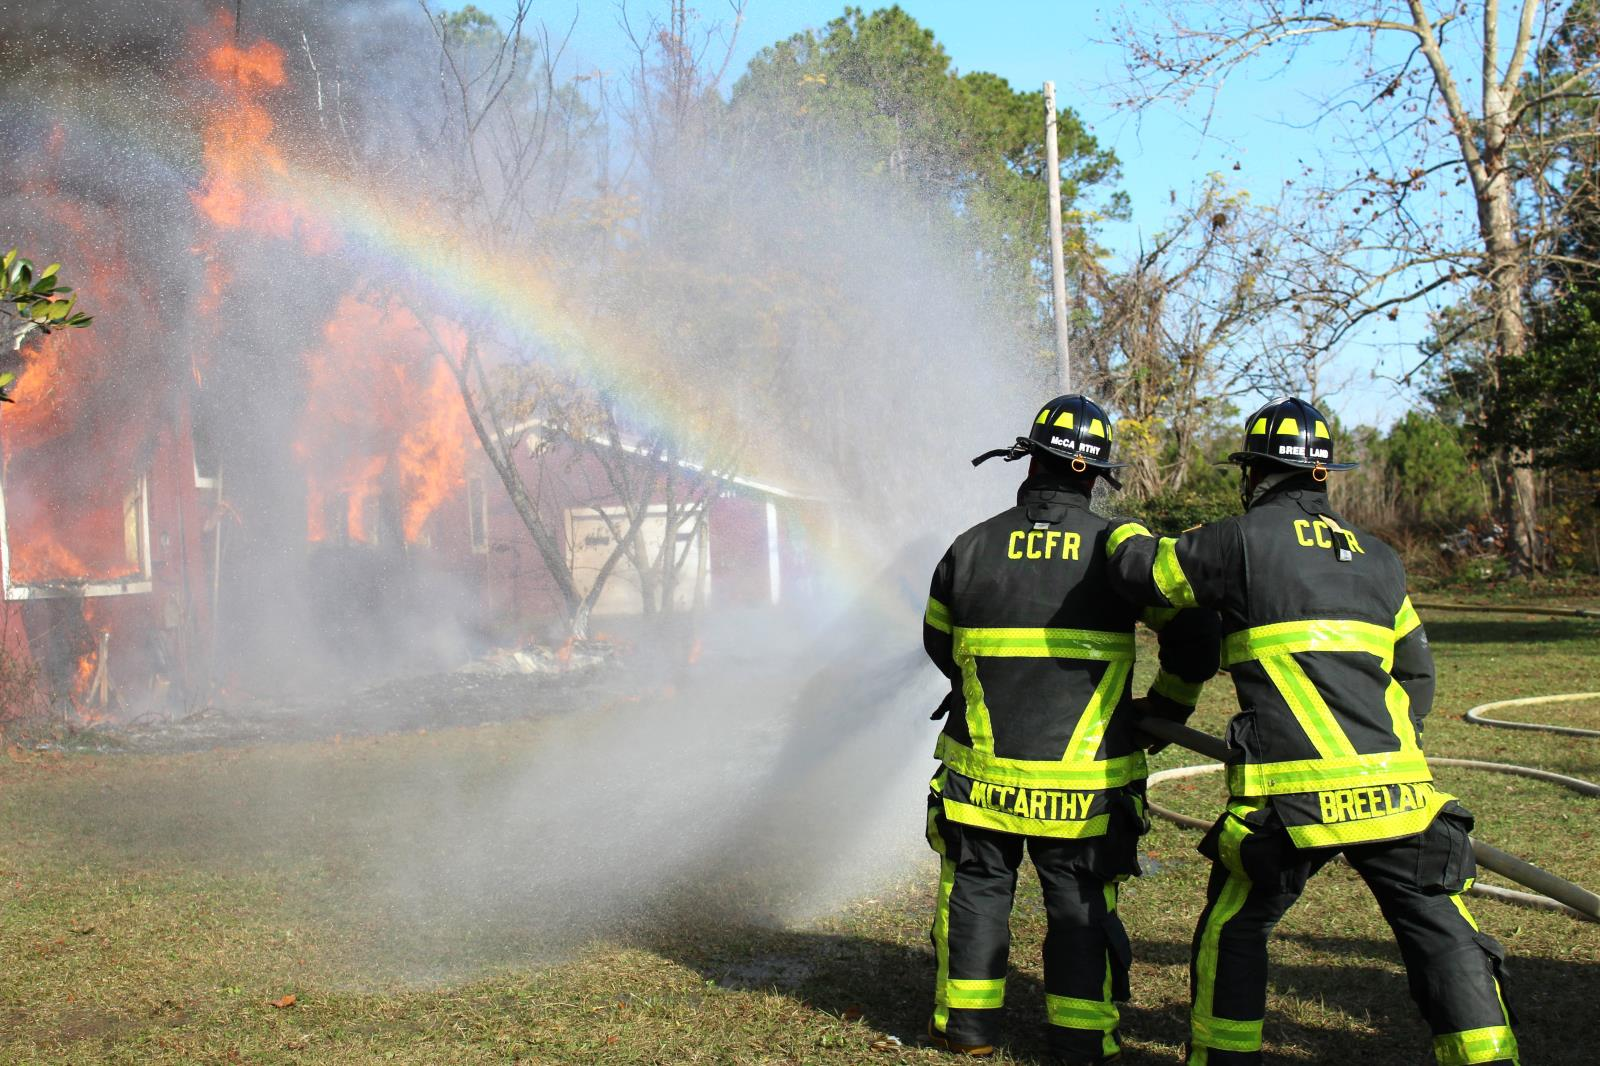 Two firefighters using the firehose to put out a fire with rainbow in the water